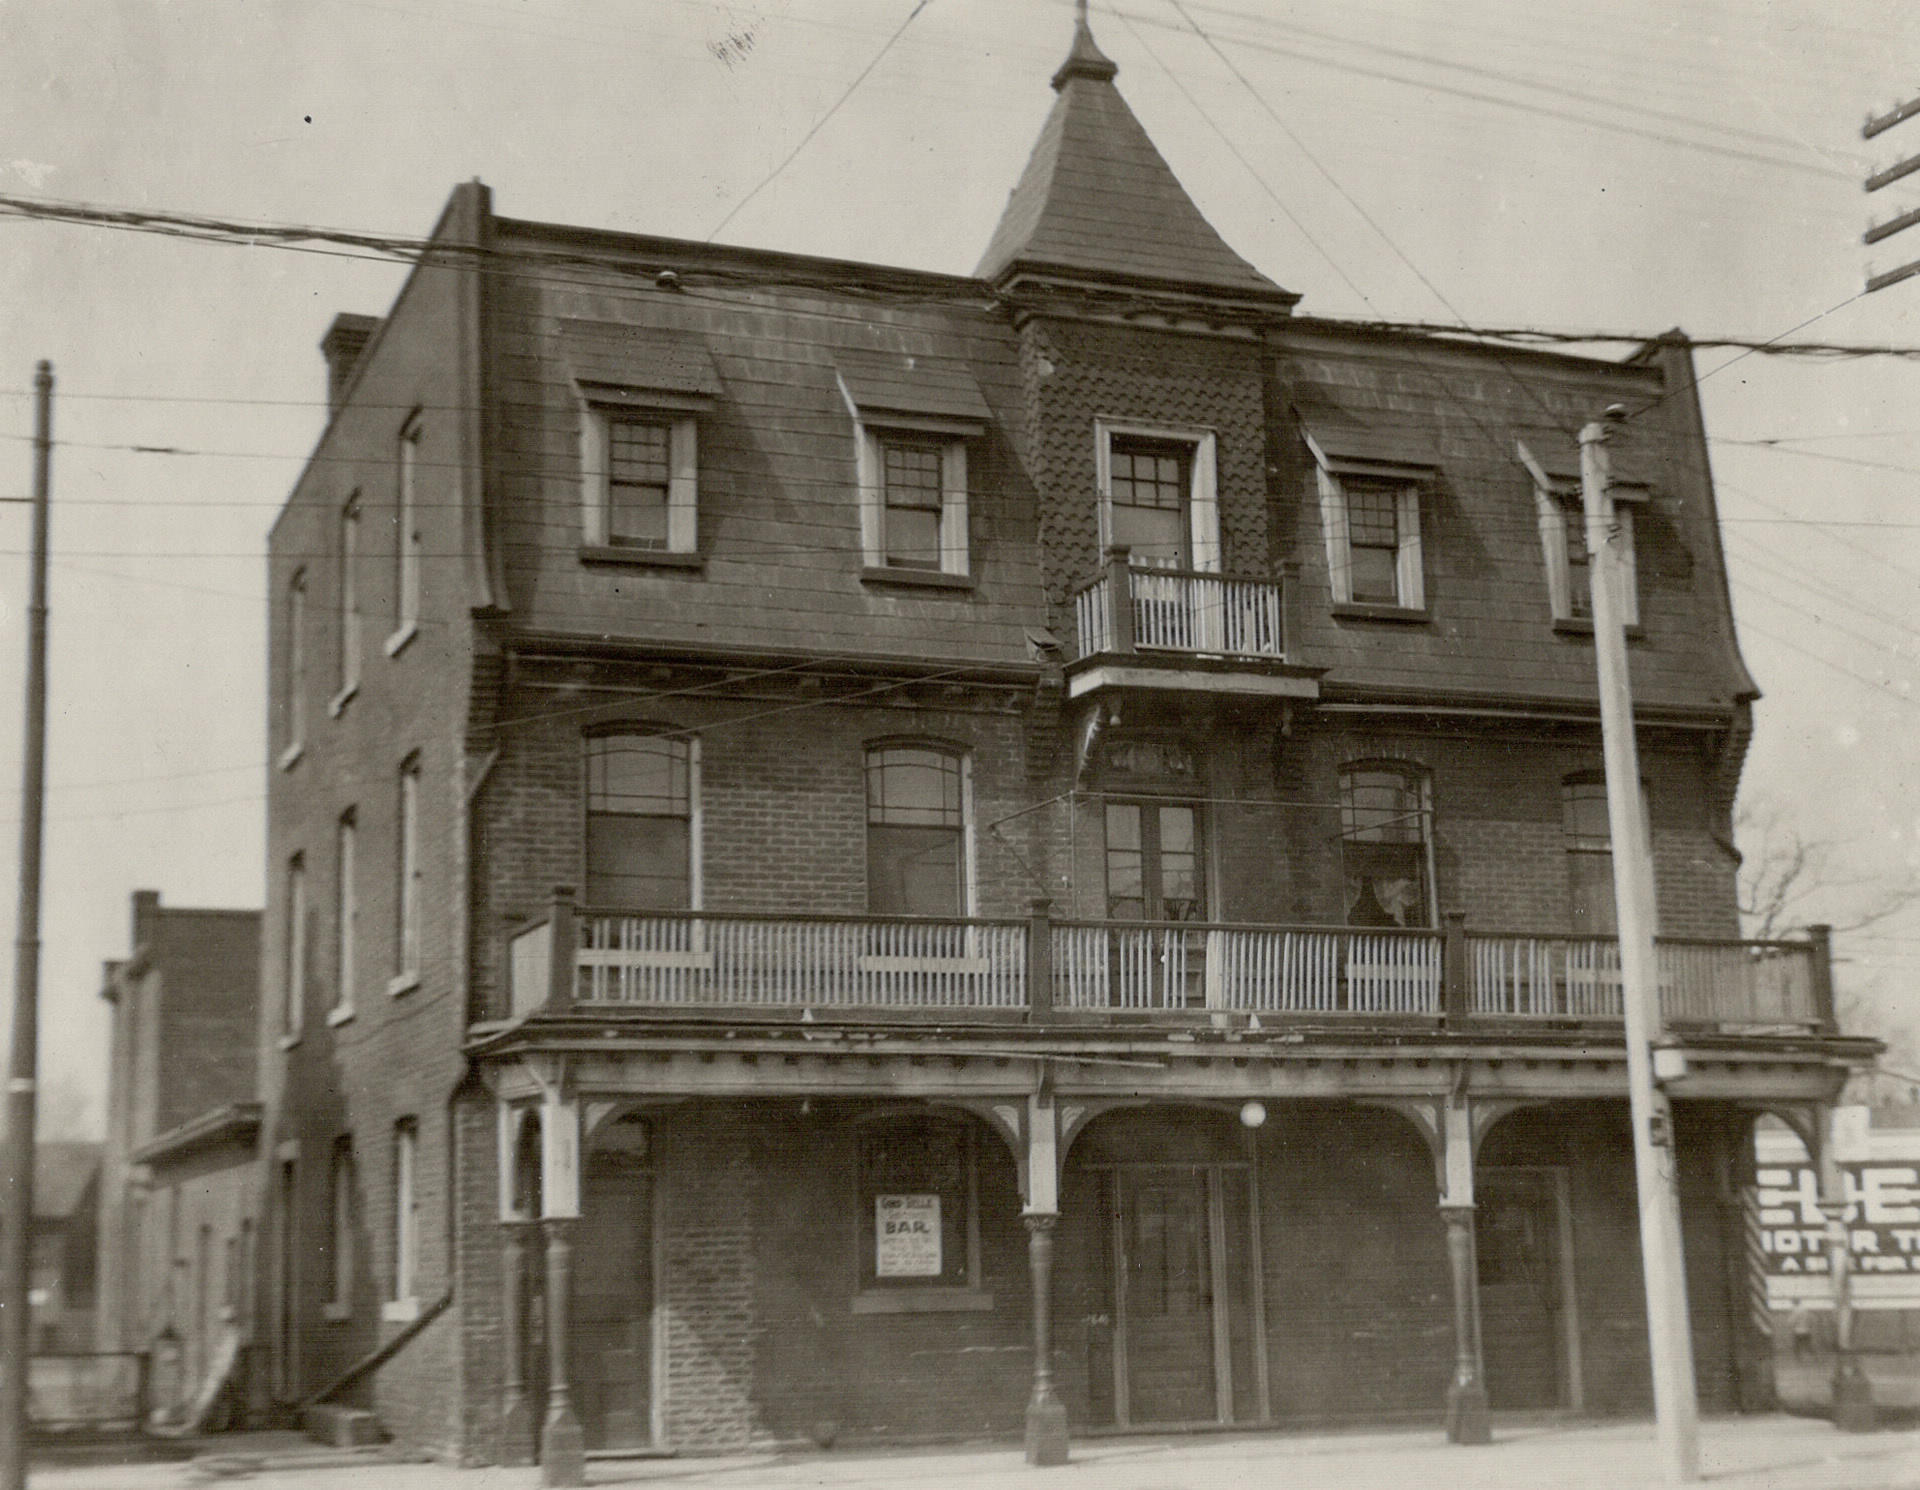 Peacock Hotel on Dundas West at Royce (Dupont) before demolition in 1924. Image: Toronto Star / Toronto Public Library, Baldwin Collection, Item TSPA 0113451f.